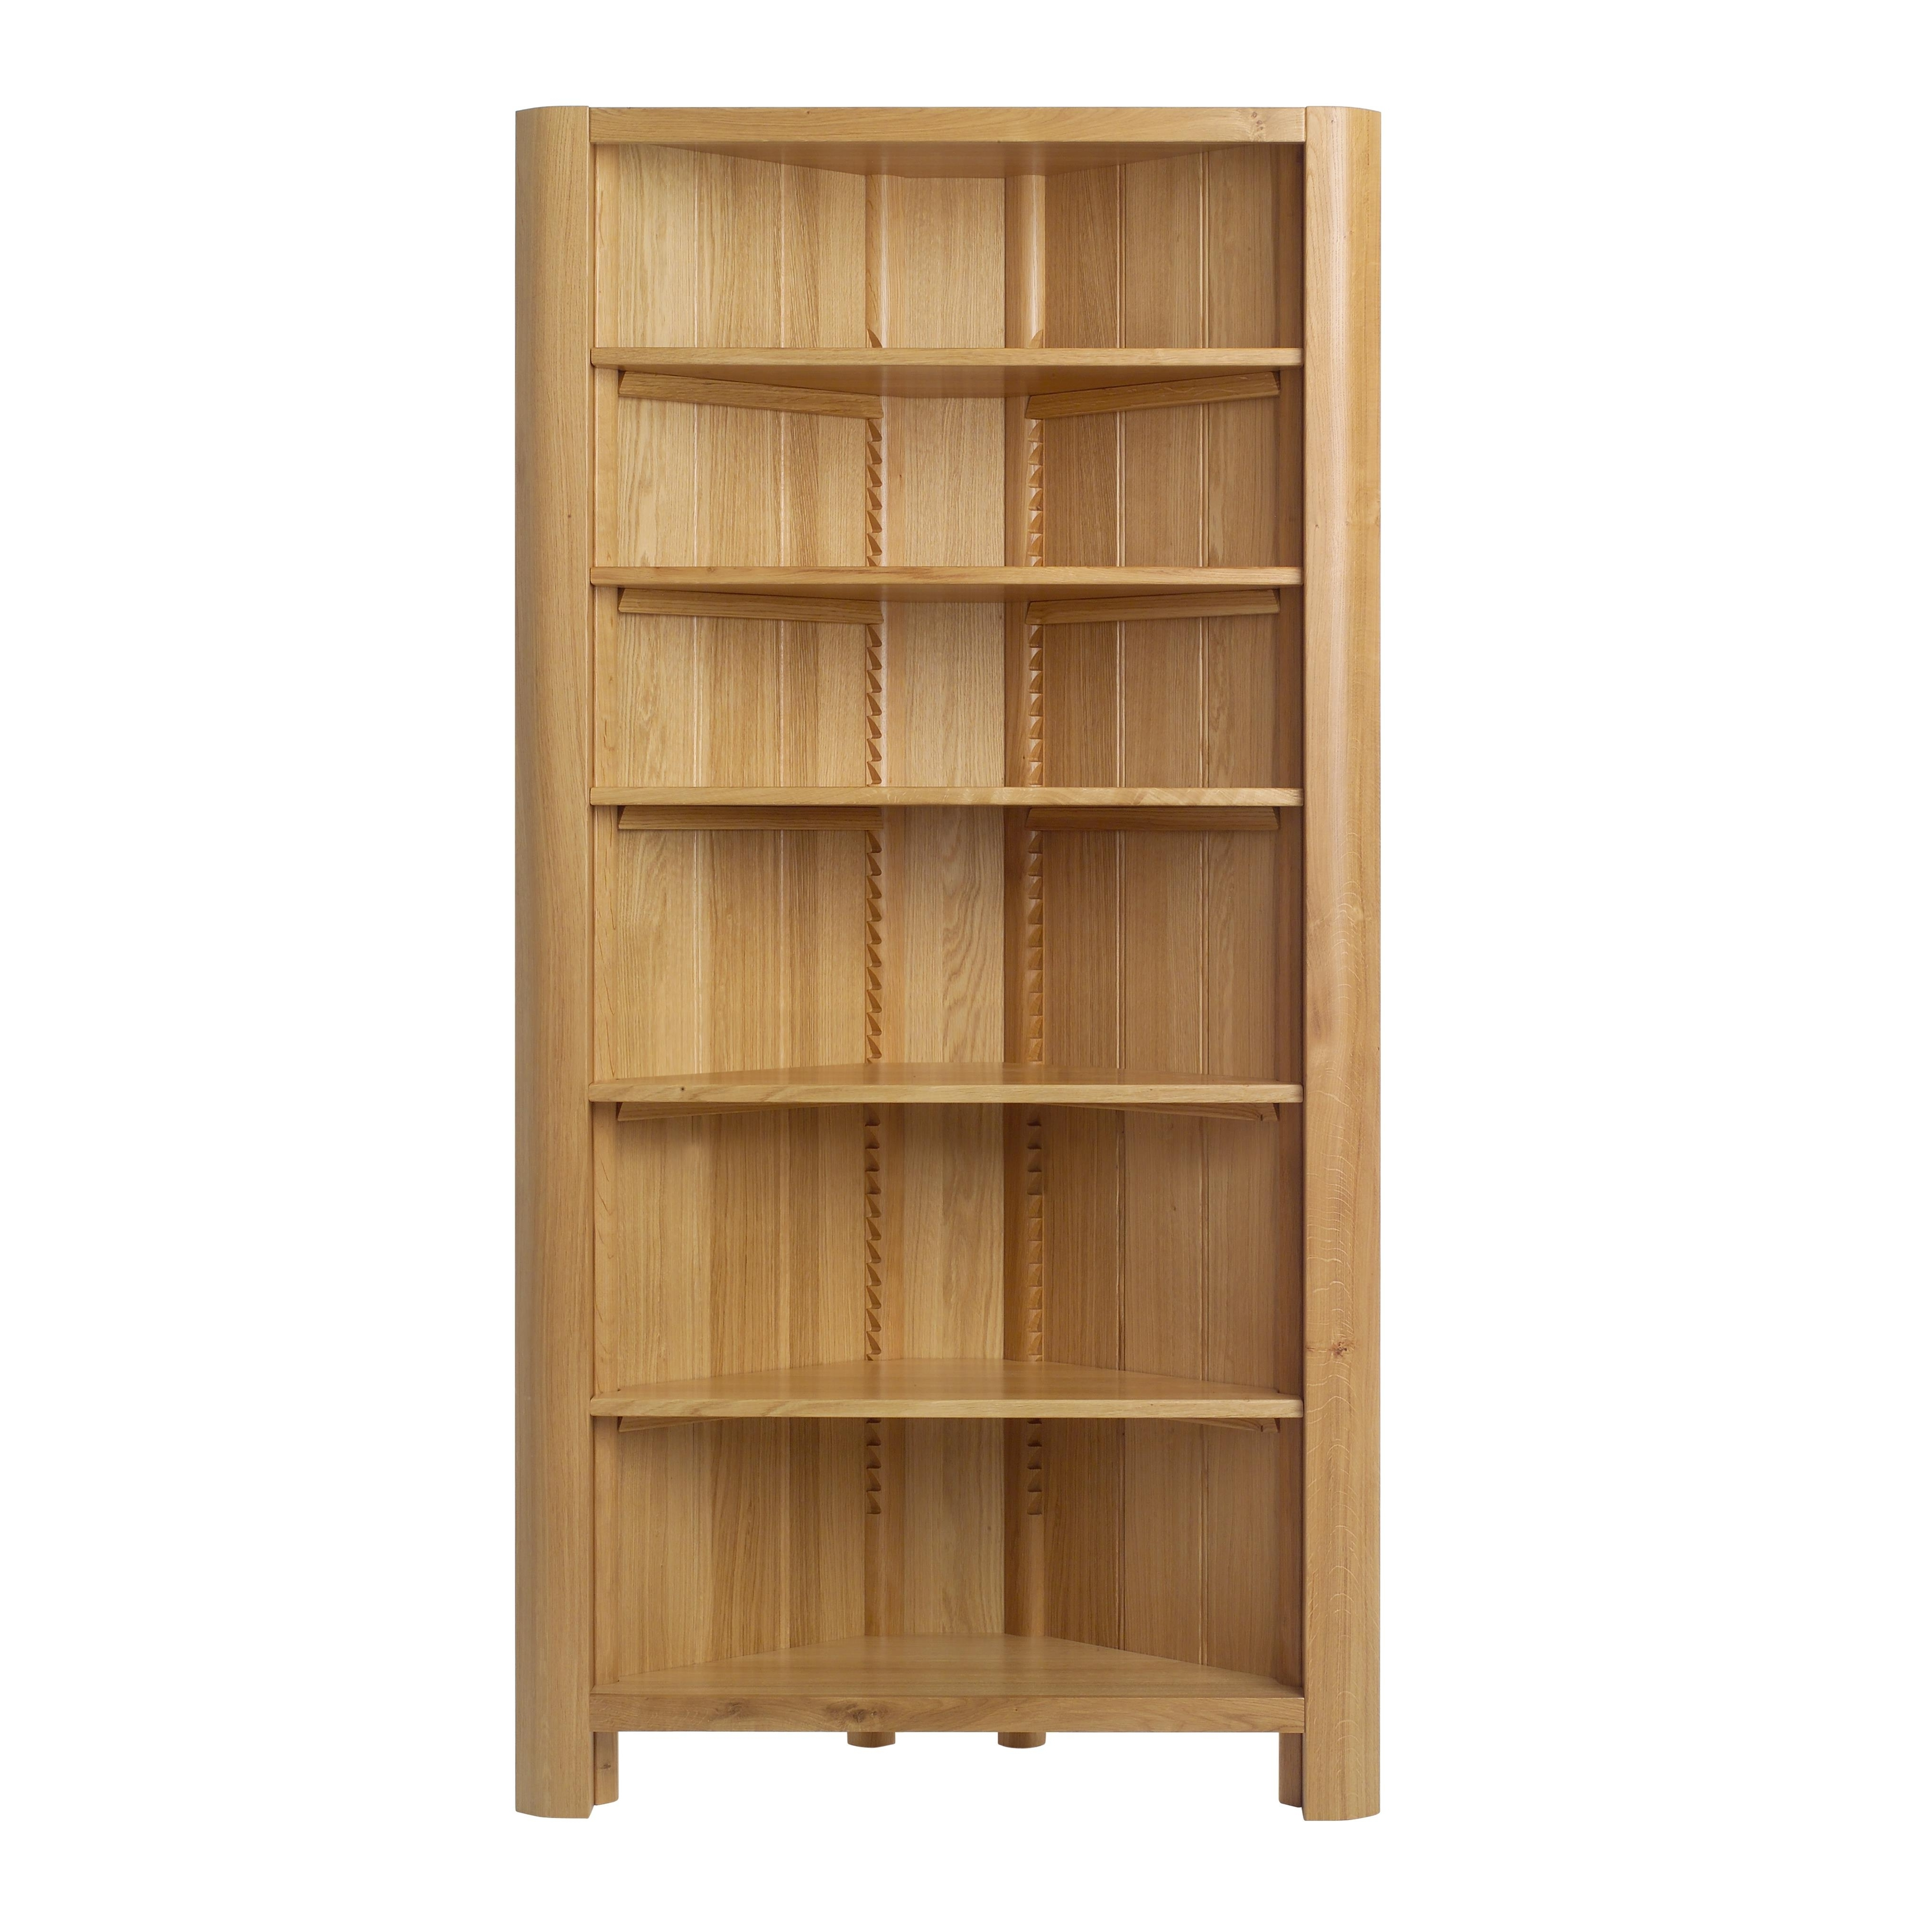 Bookcases Flat Pack With Regard To Best And Newest Bookcase Best Of Flat Pack Remarkable Images Design Bookcases (View 3 of 15)